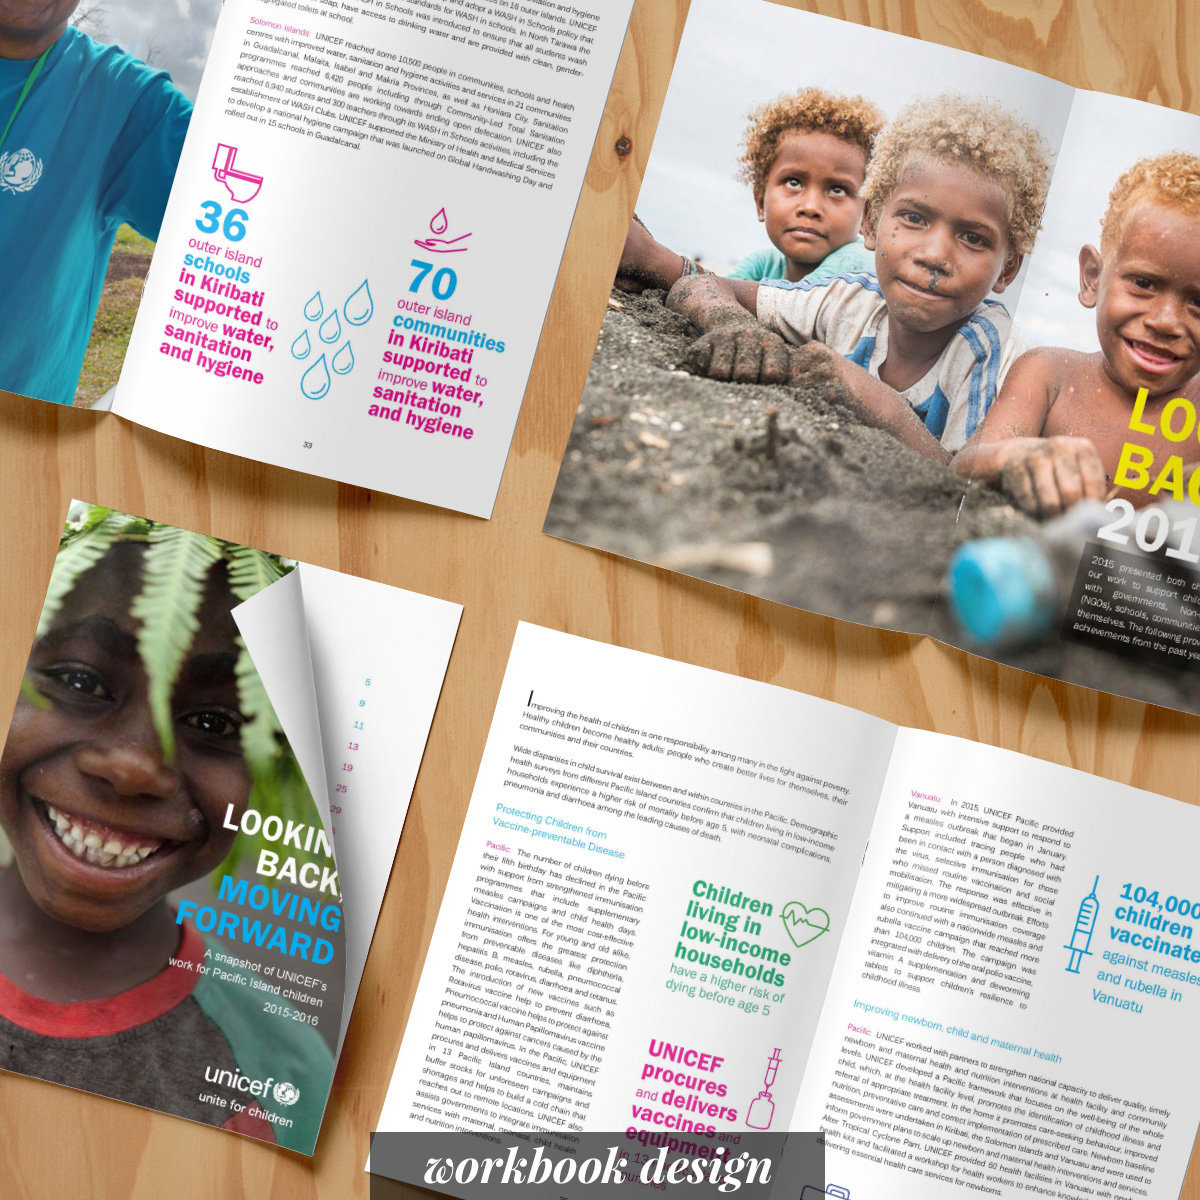 document-design-unicef